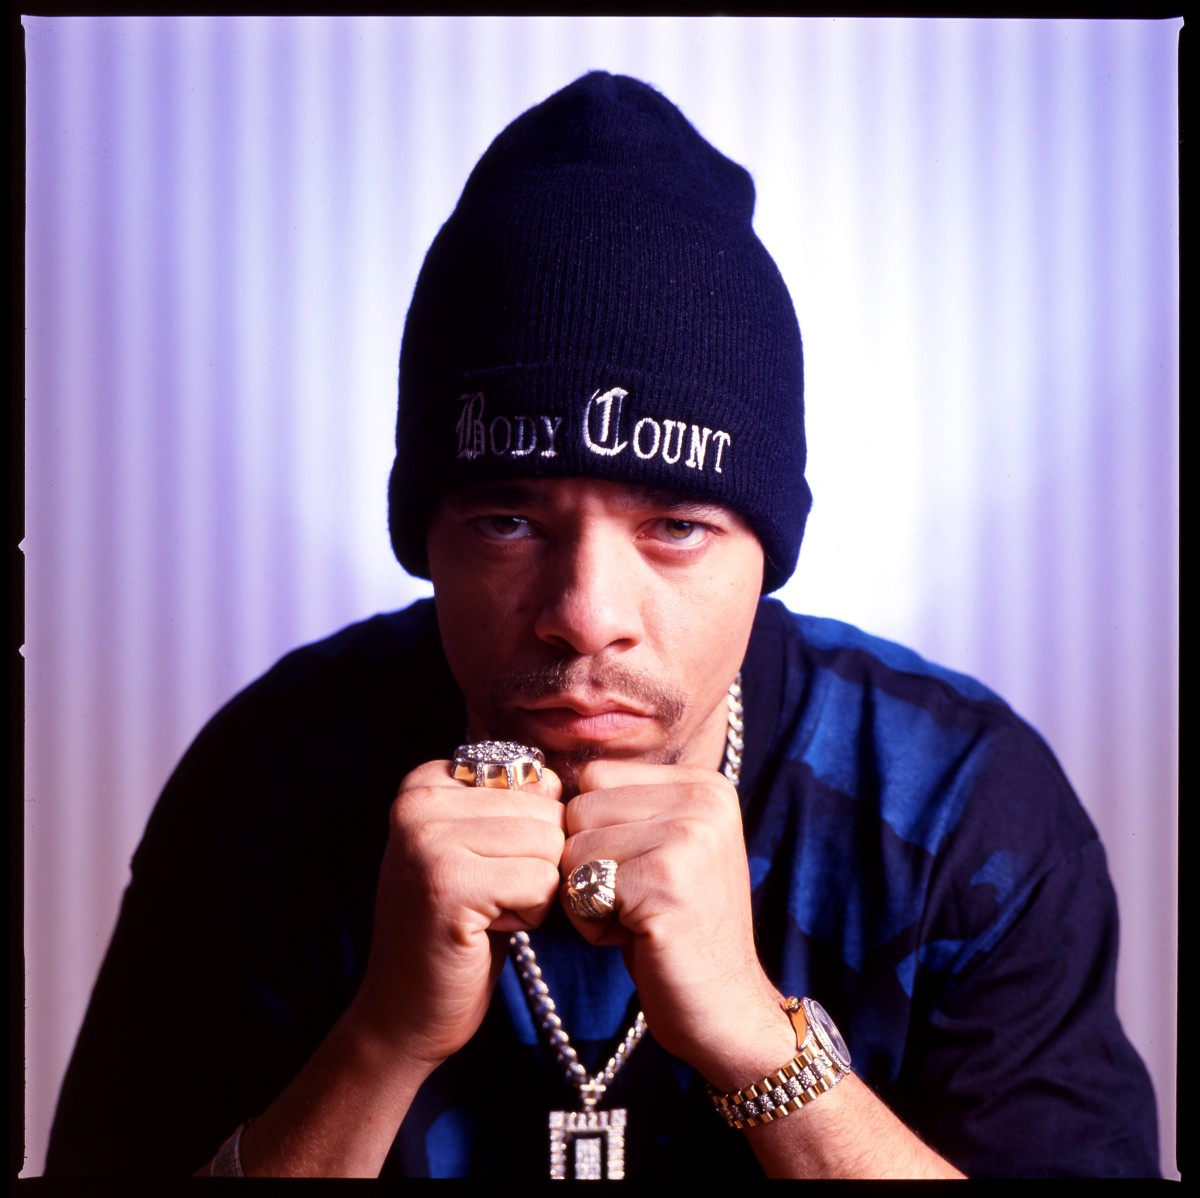 Ice t fuck the police images 53